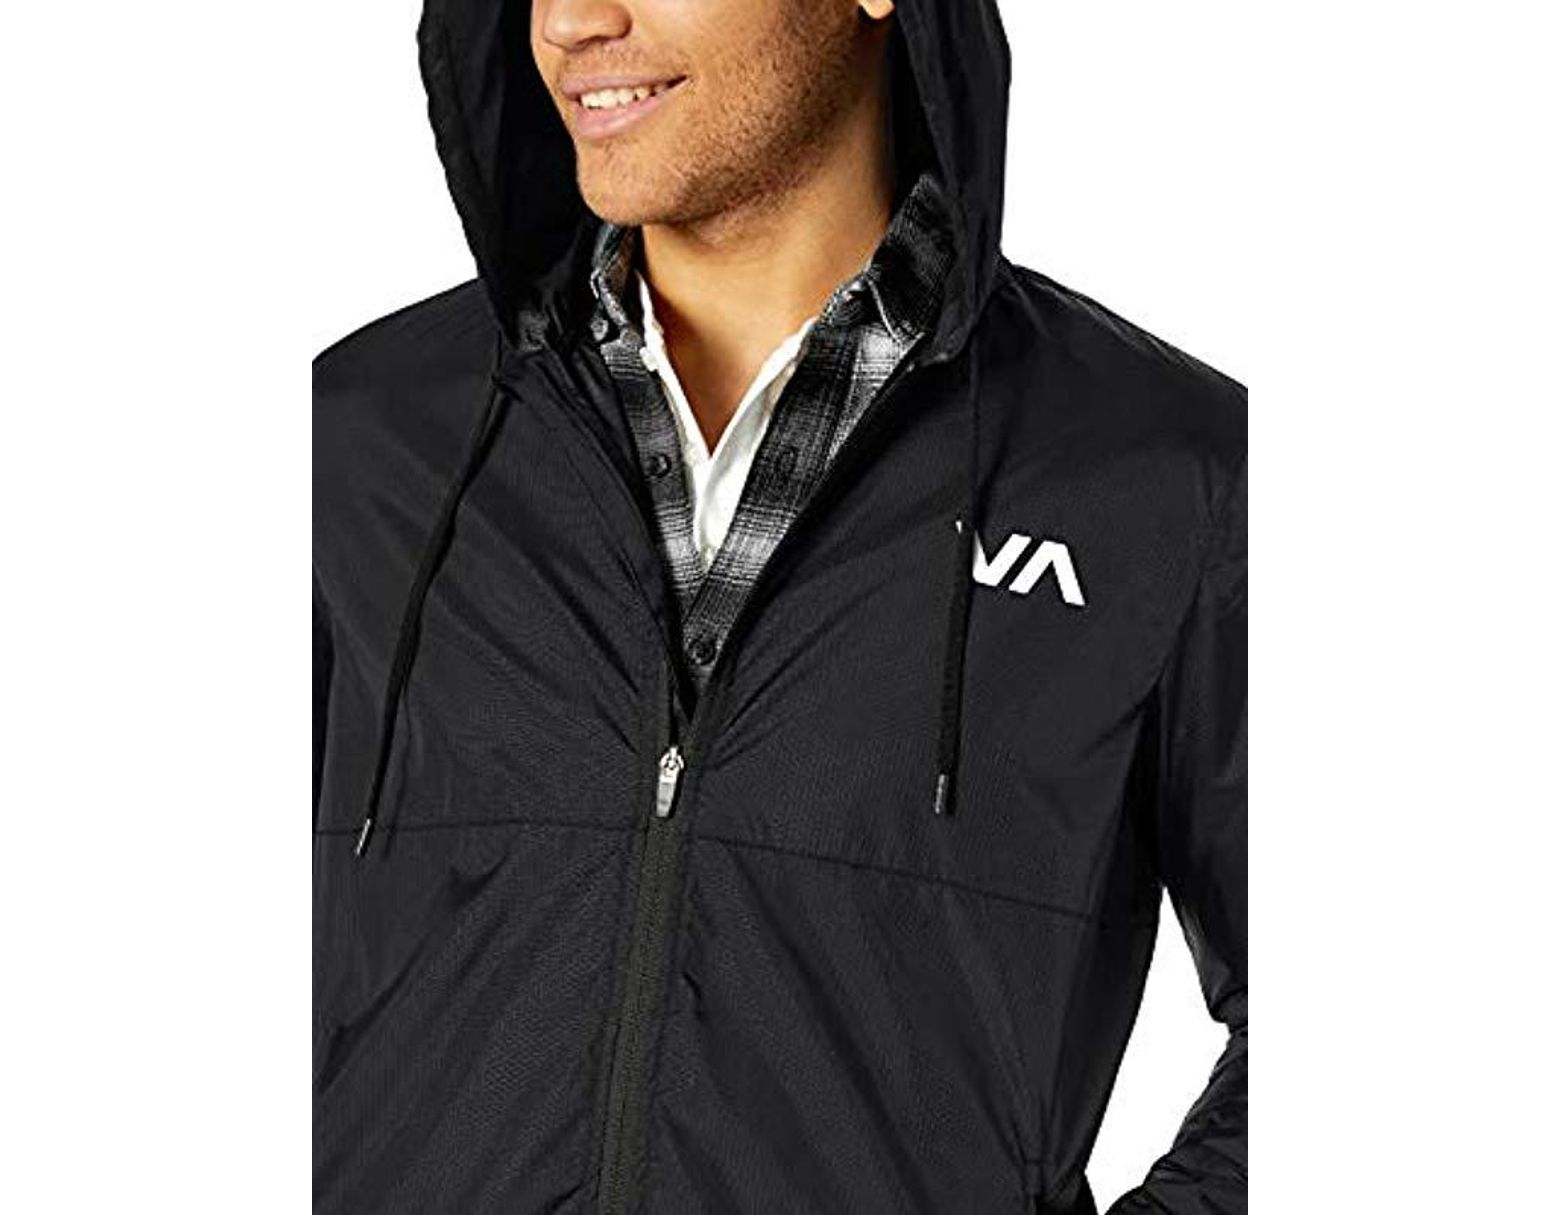 cde315085 RVCA Hexstop Iv Windbreaker Jacket in Black for Men - Save 6% - Lyst